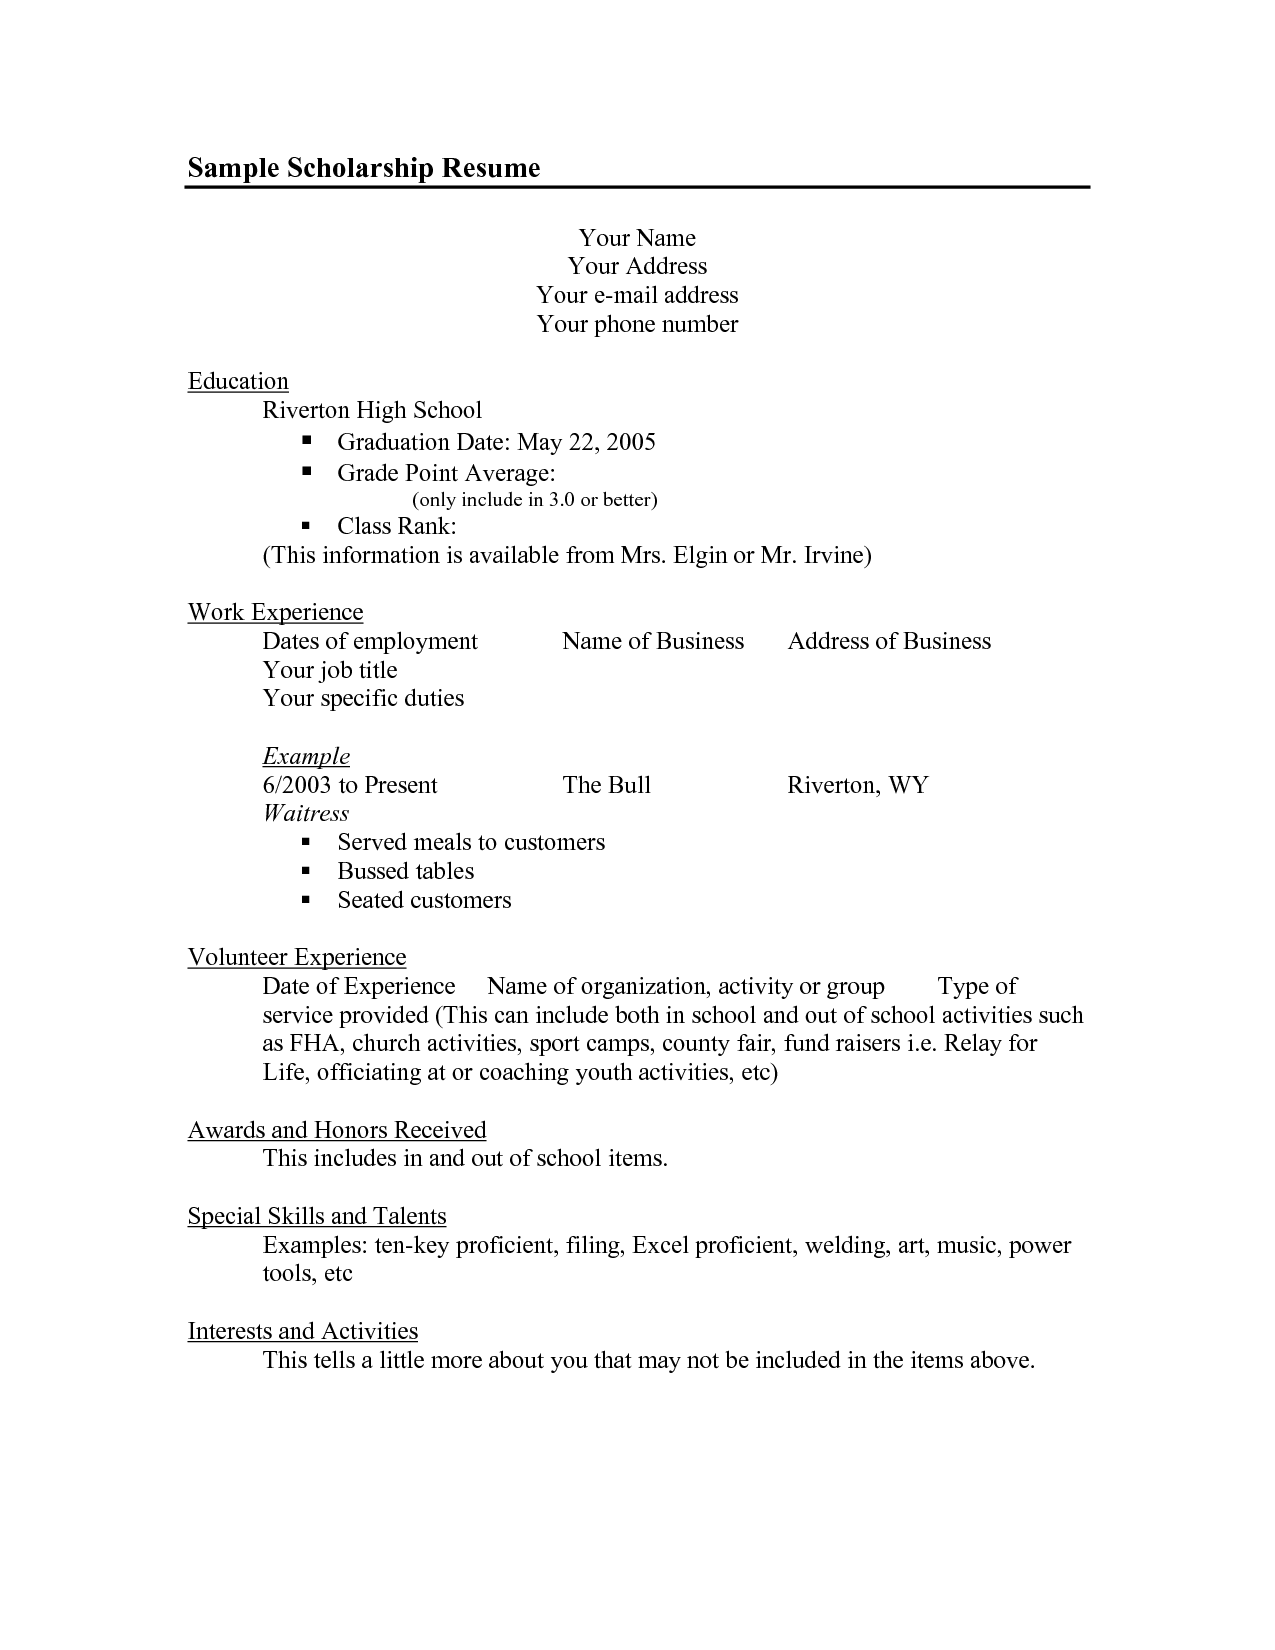 Scholarship Resume Template Scholarship Resume Templates  Sample Scholarship Resume